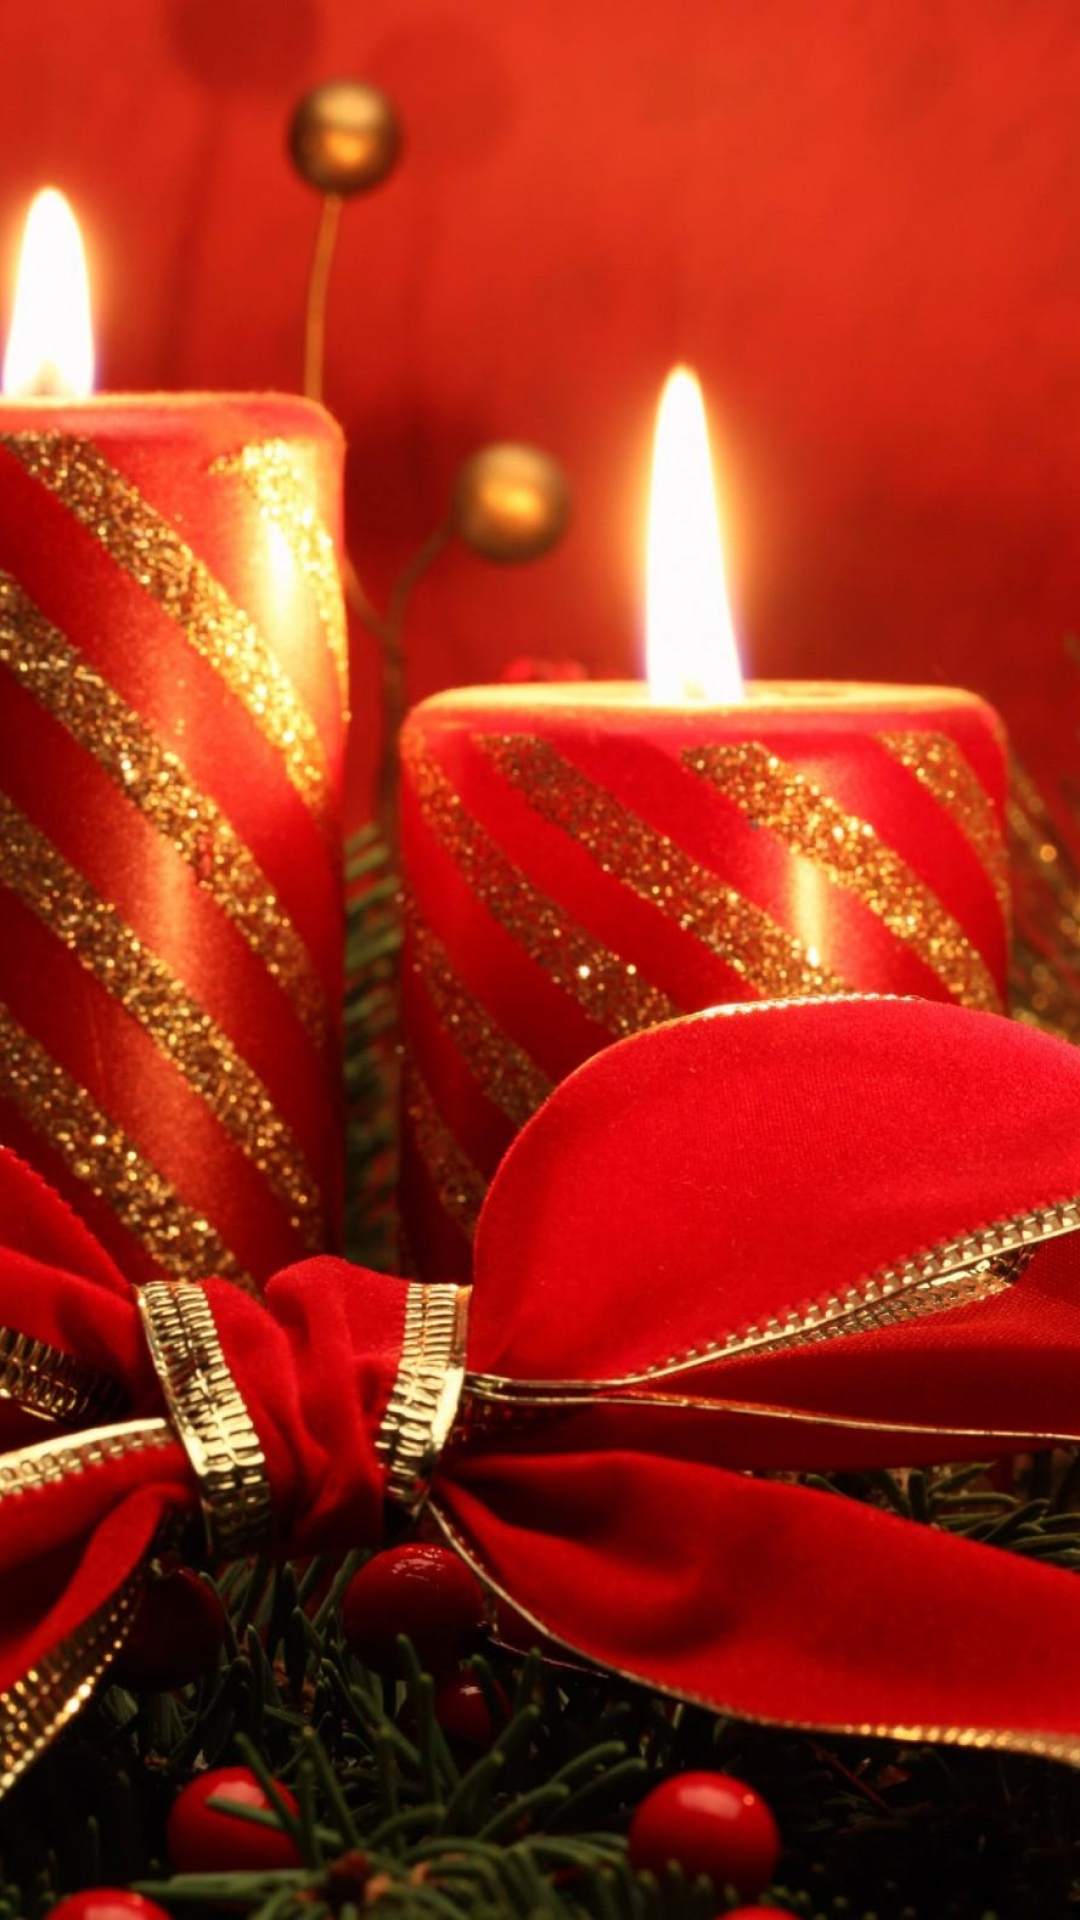 Christmas holiday candles - Best htc one wallpapers